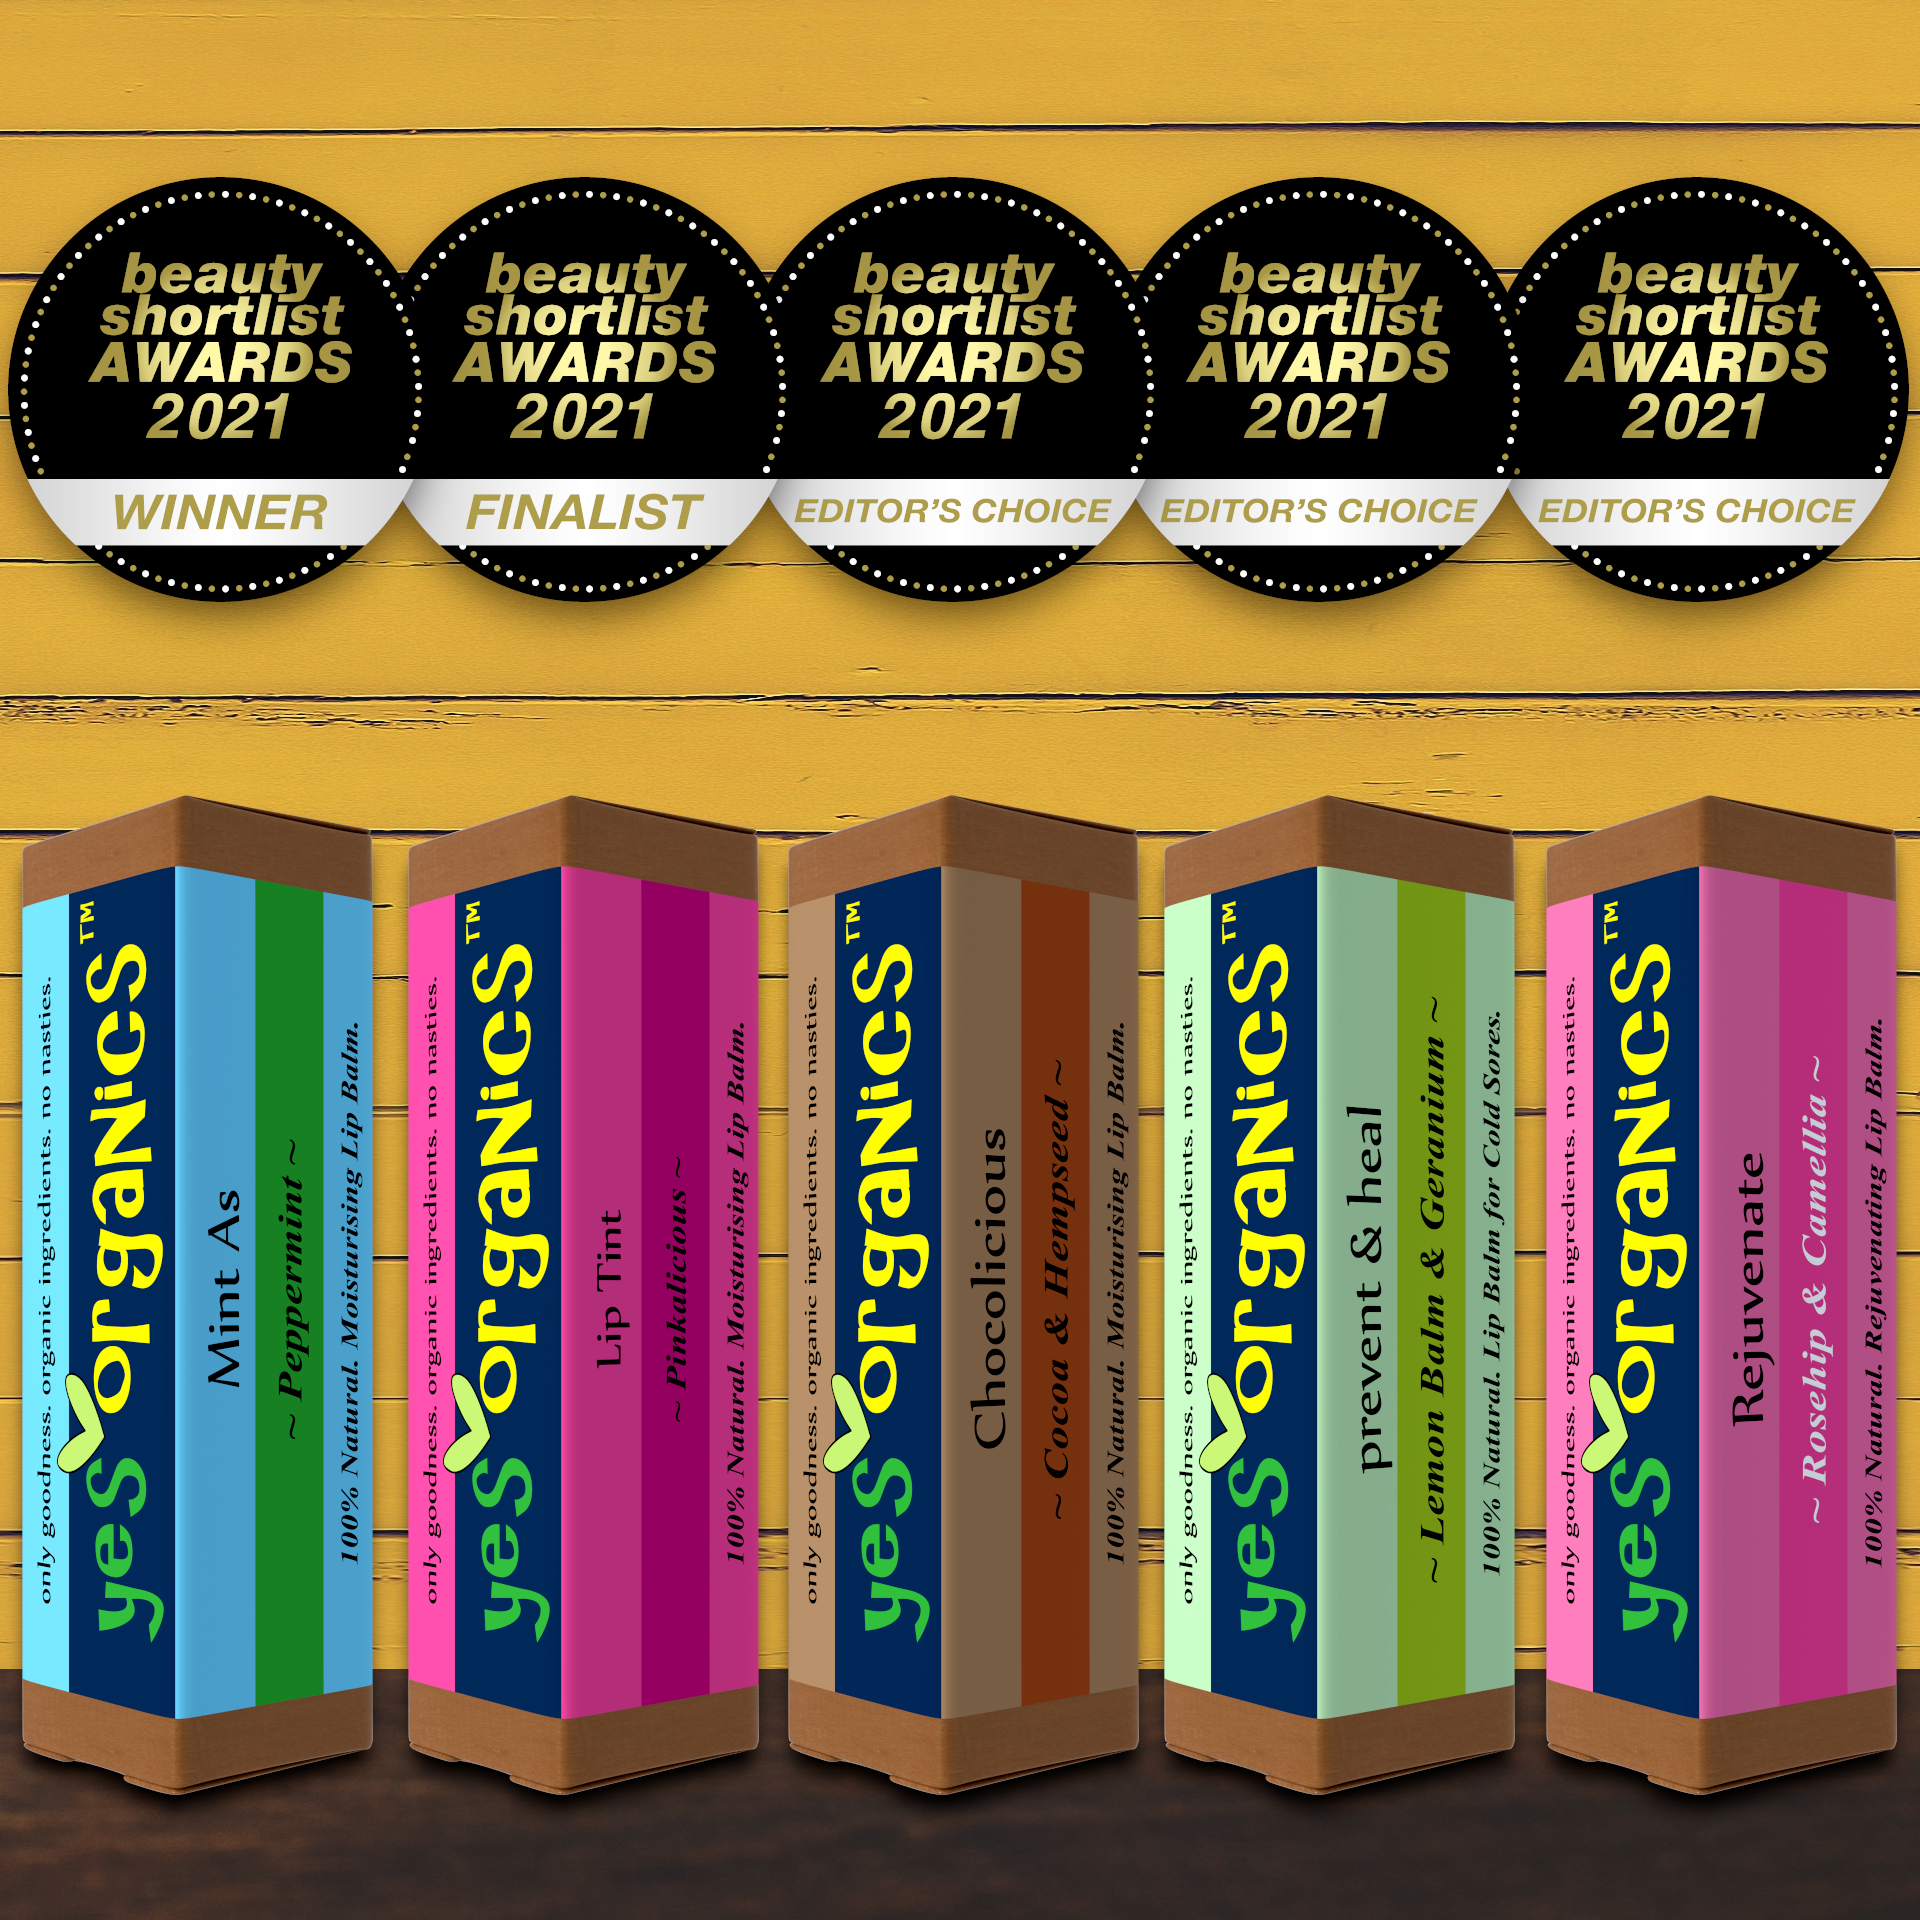 Yes Organics Wins Best Lip Balm & Best Lip Tint Awards in The Beauty Shortlist Awards 2021